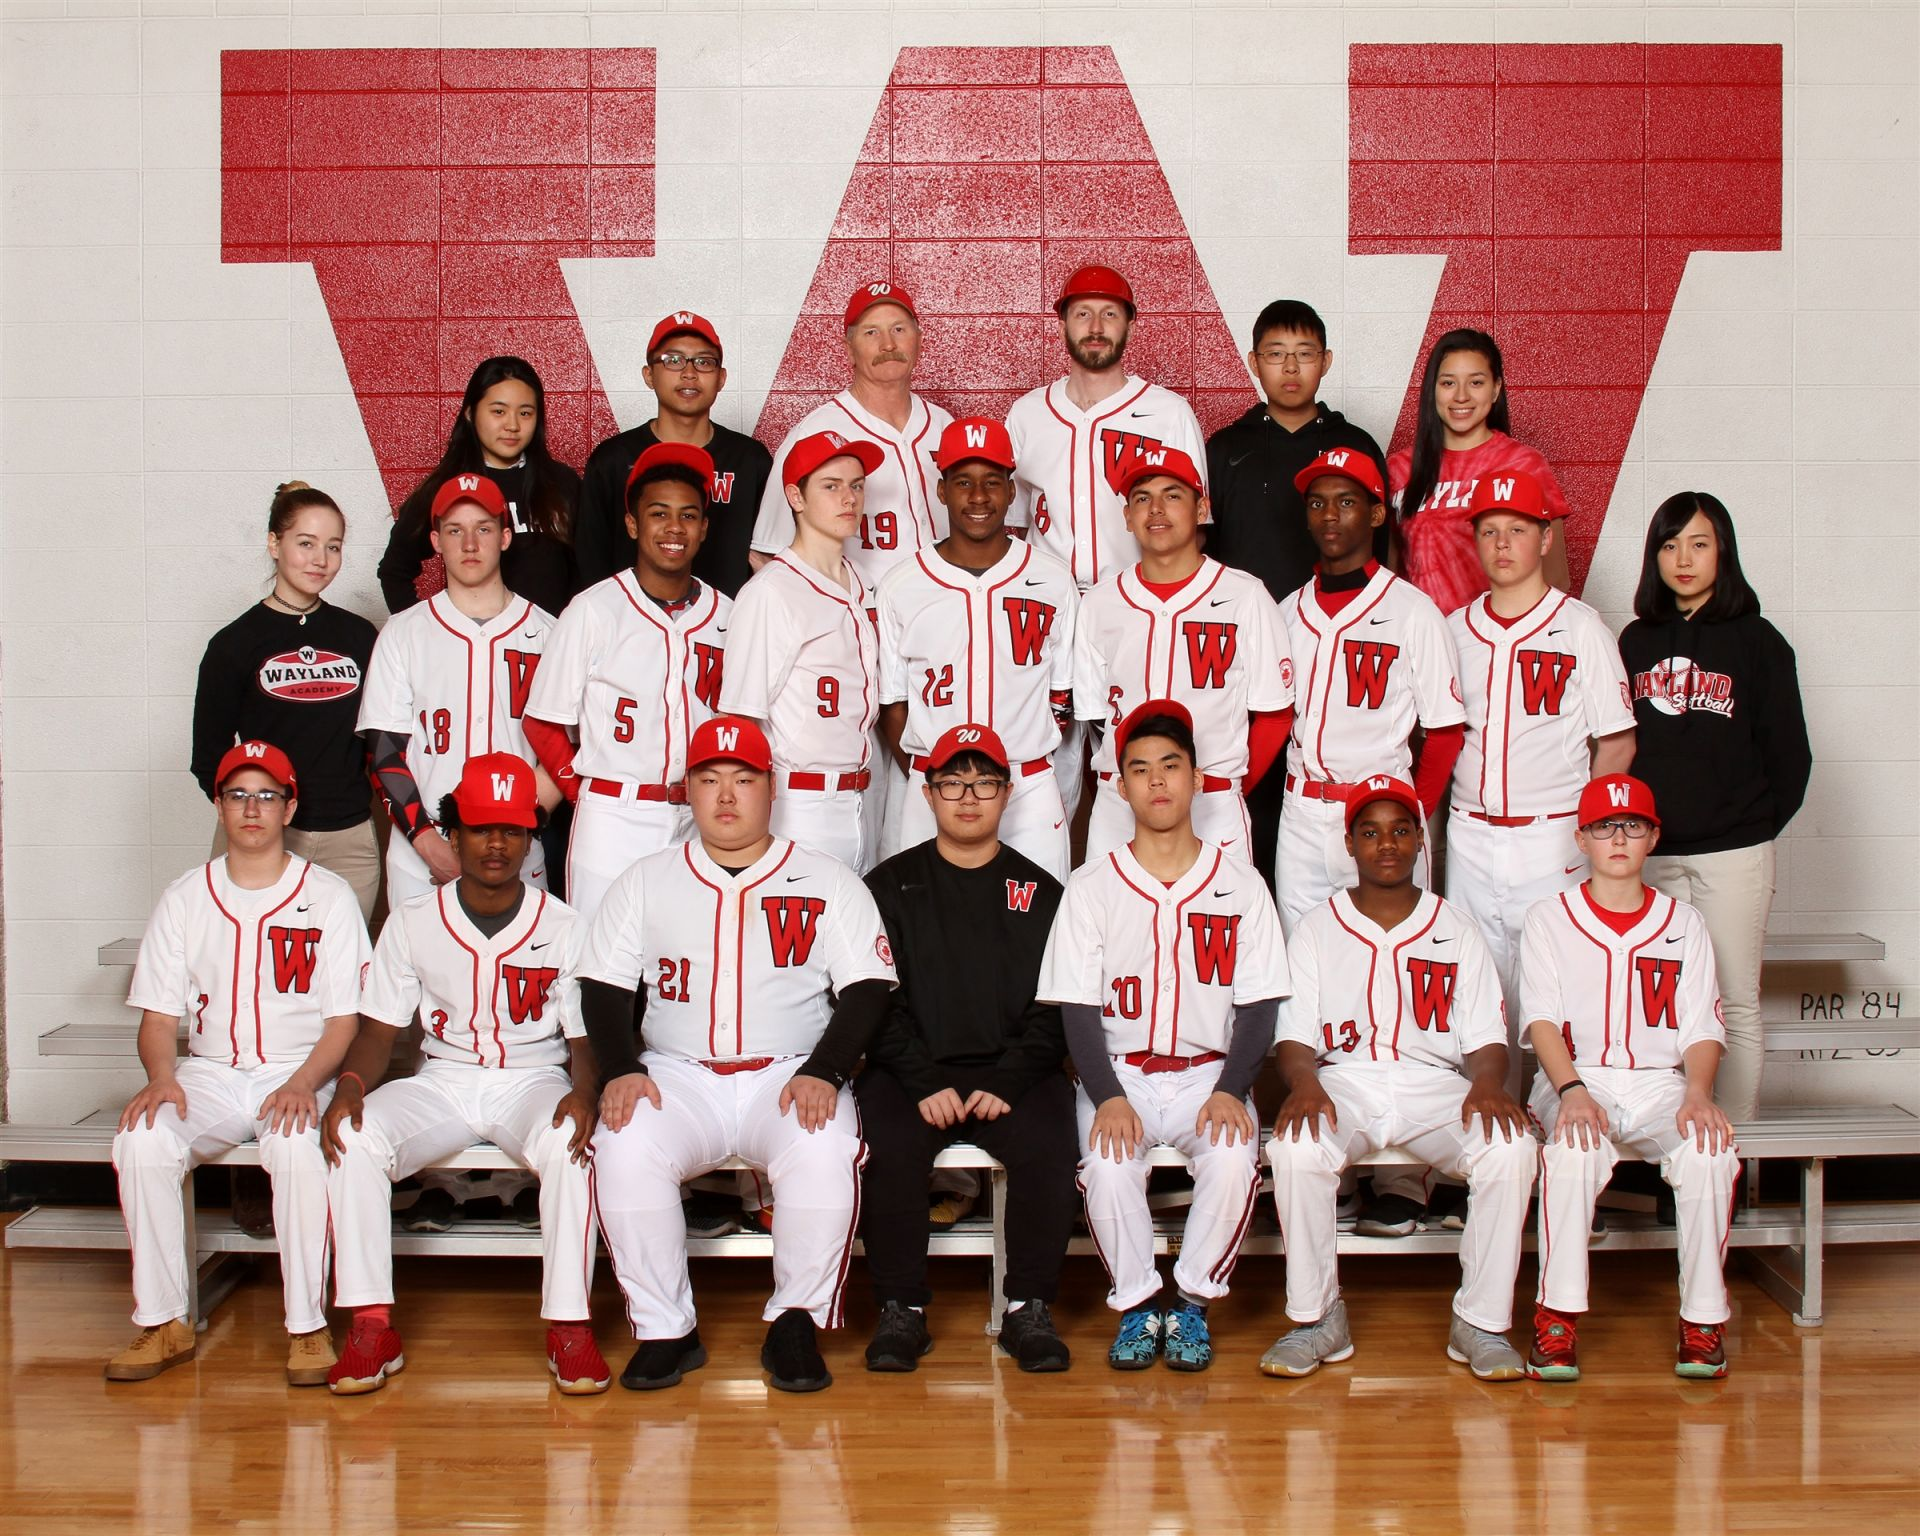 The Wayland Academy 2018 Baseball team.